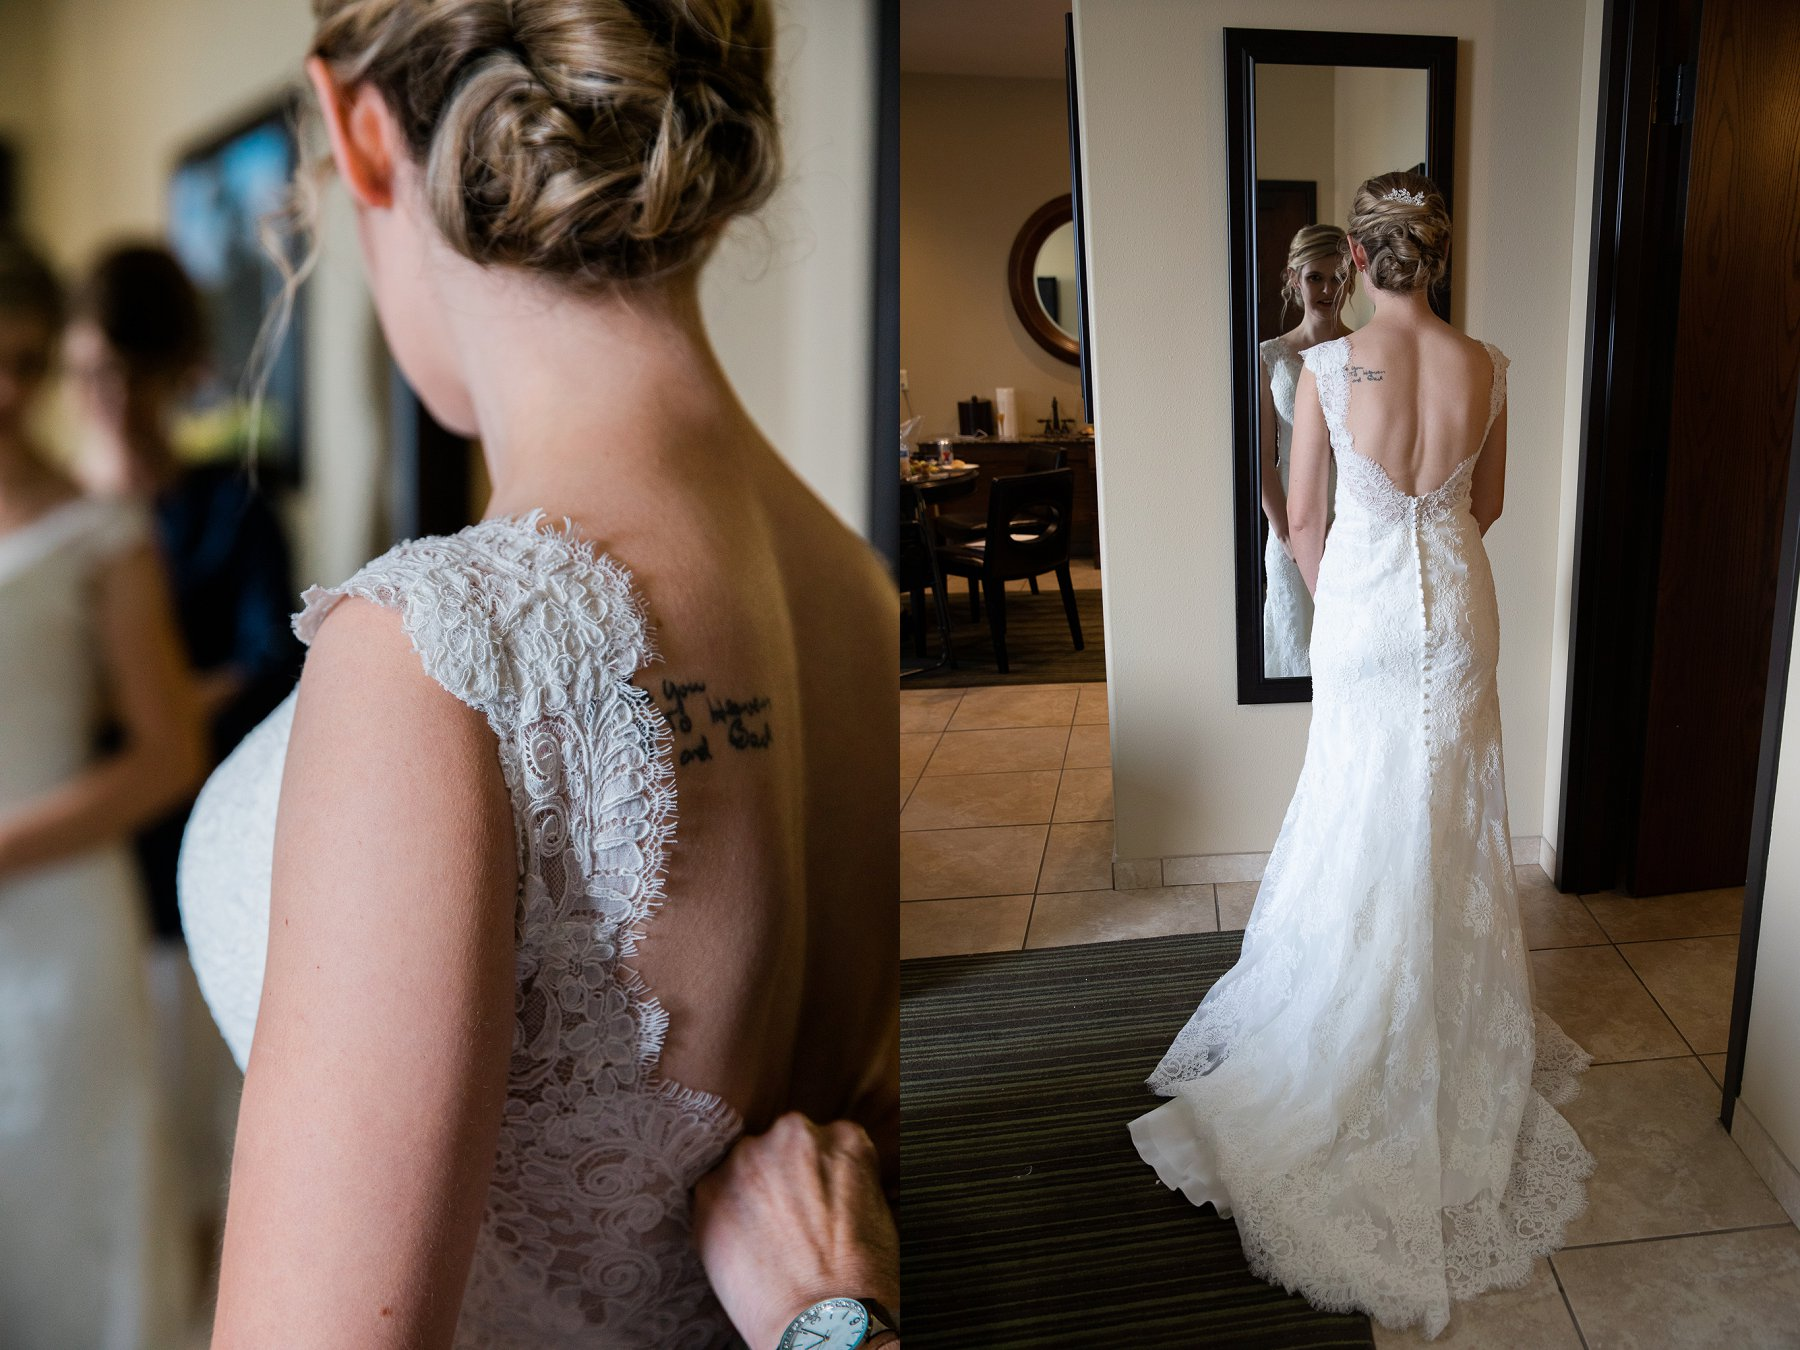 Lawrence Rooftop Wedding at The Oread by Merry Ohler